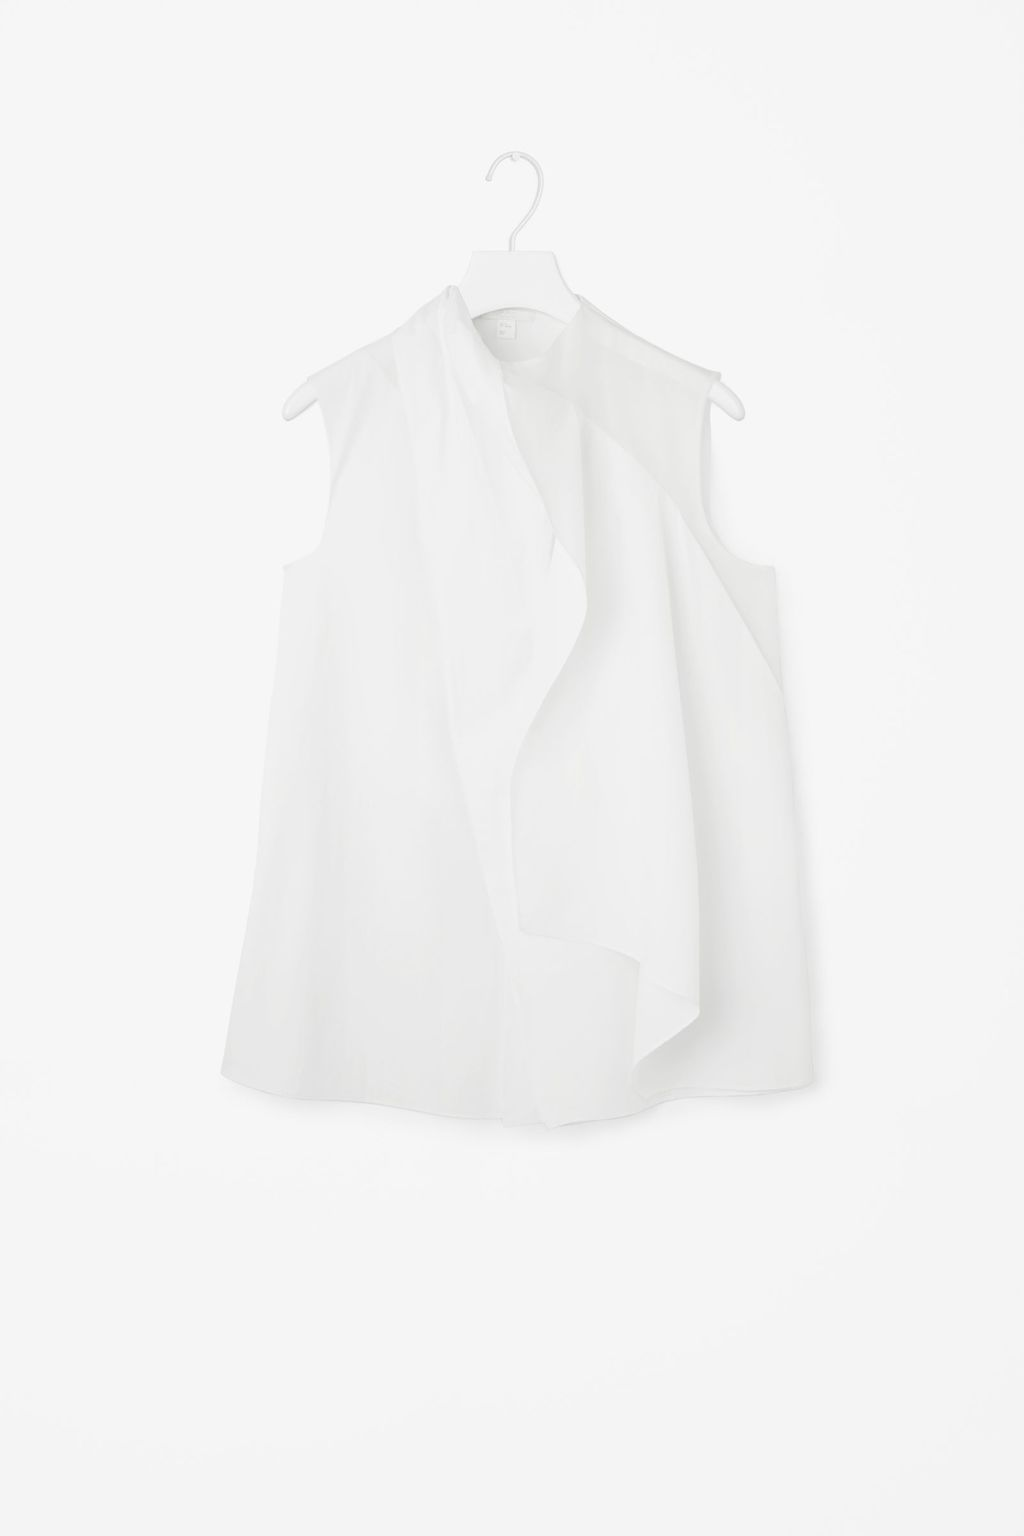 Draped Top - pattern: plain; sleeve style: sleeveless; predominant colour: light grey; occasions: casual, creative work; length: standard; style: top; fibres: cotton - 100%; fit: straight cut; neckline: crew; sleeve length: sleeveless; texture group: cotton feel fabrics; pattern type: fabric; season: s/s 2016; wardrobe: basic